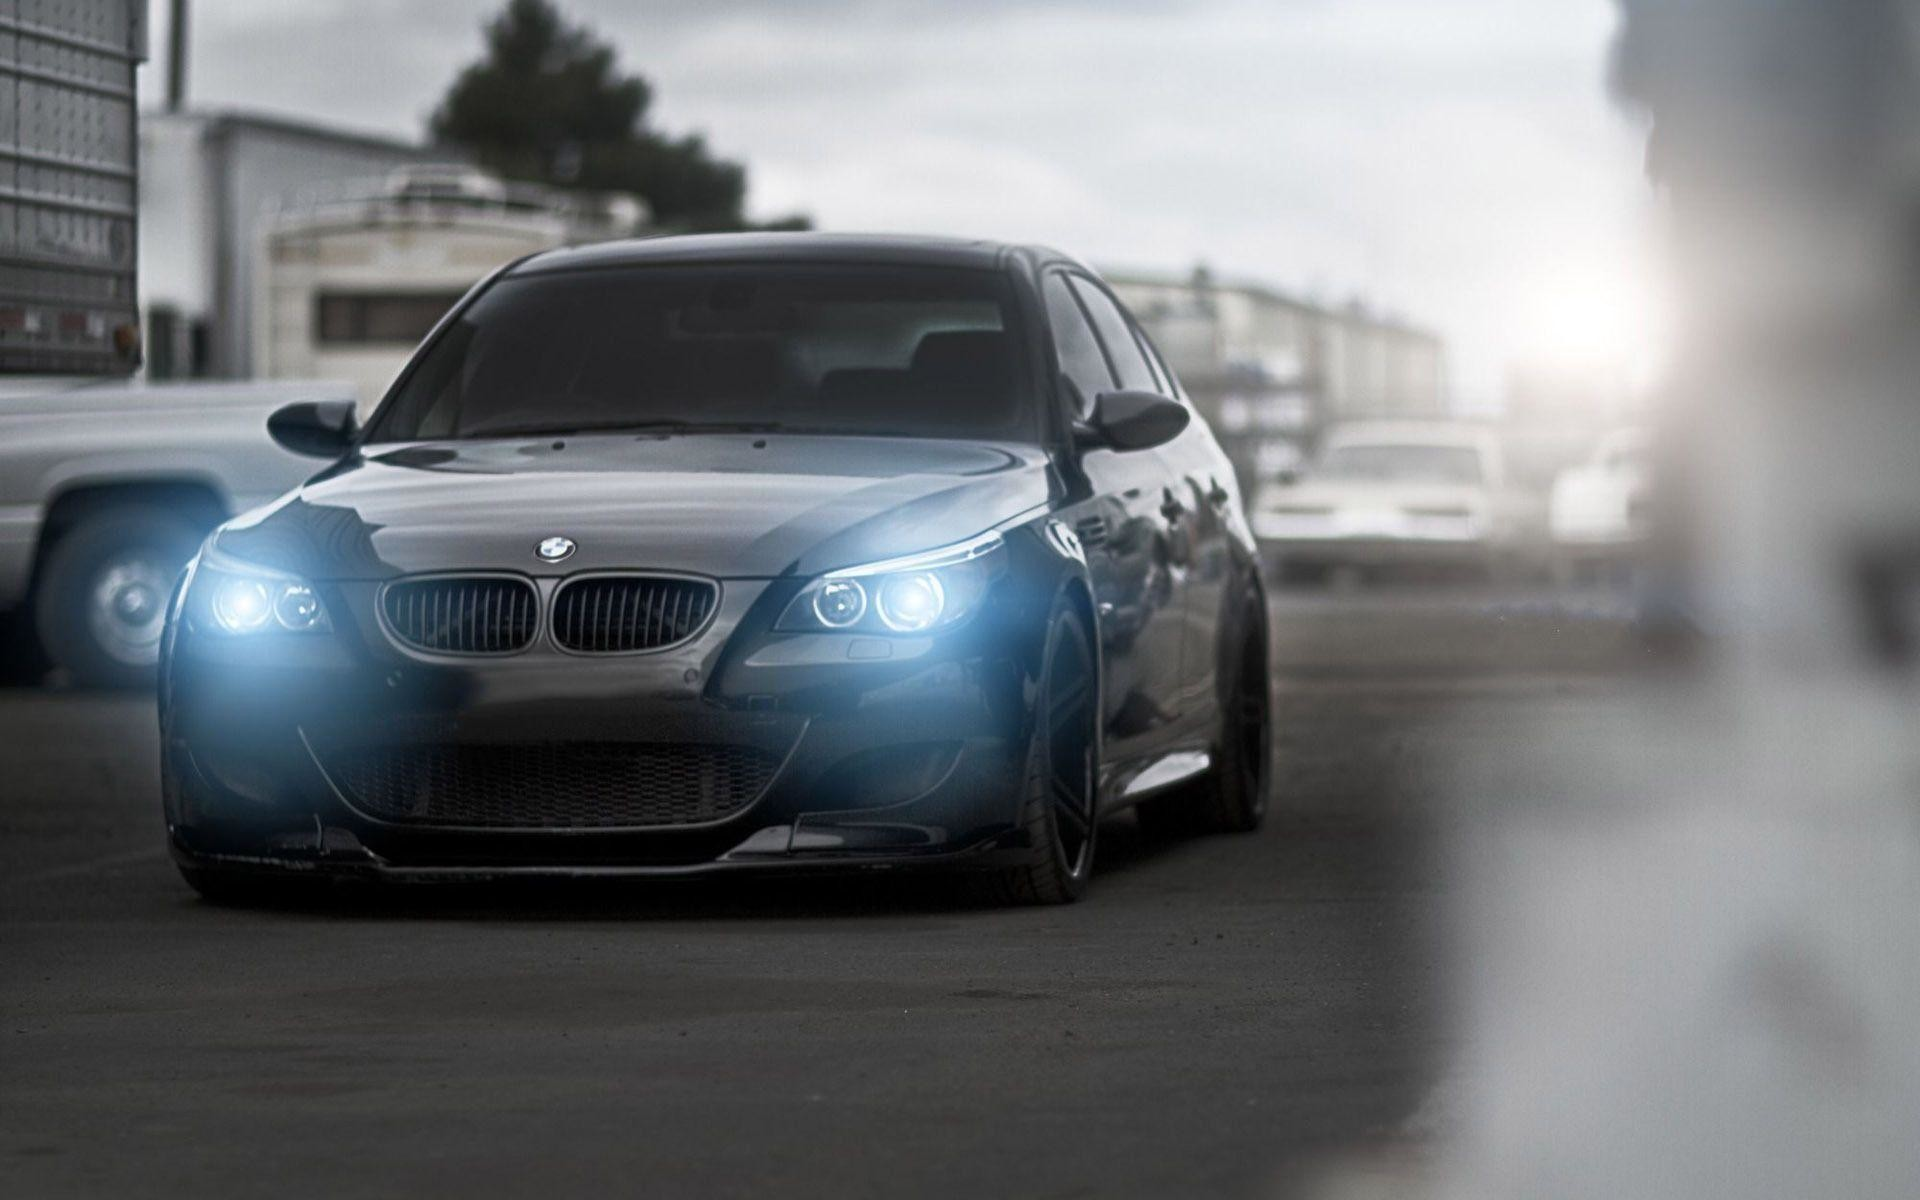 1920x1200 Bmw M5 Wallpapers - Full HD wallpaper search